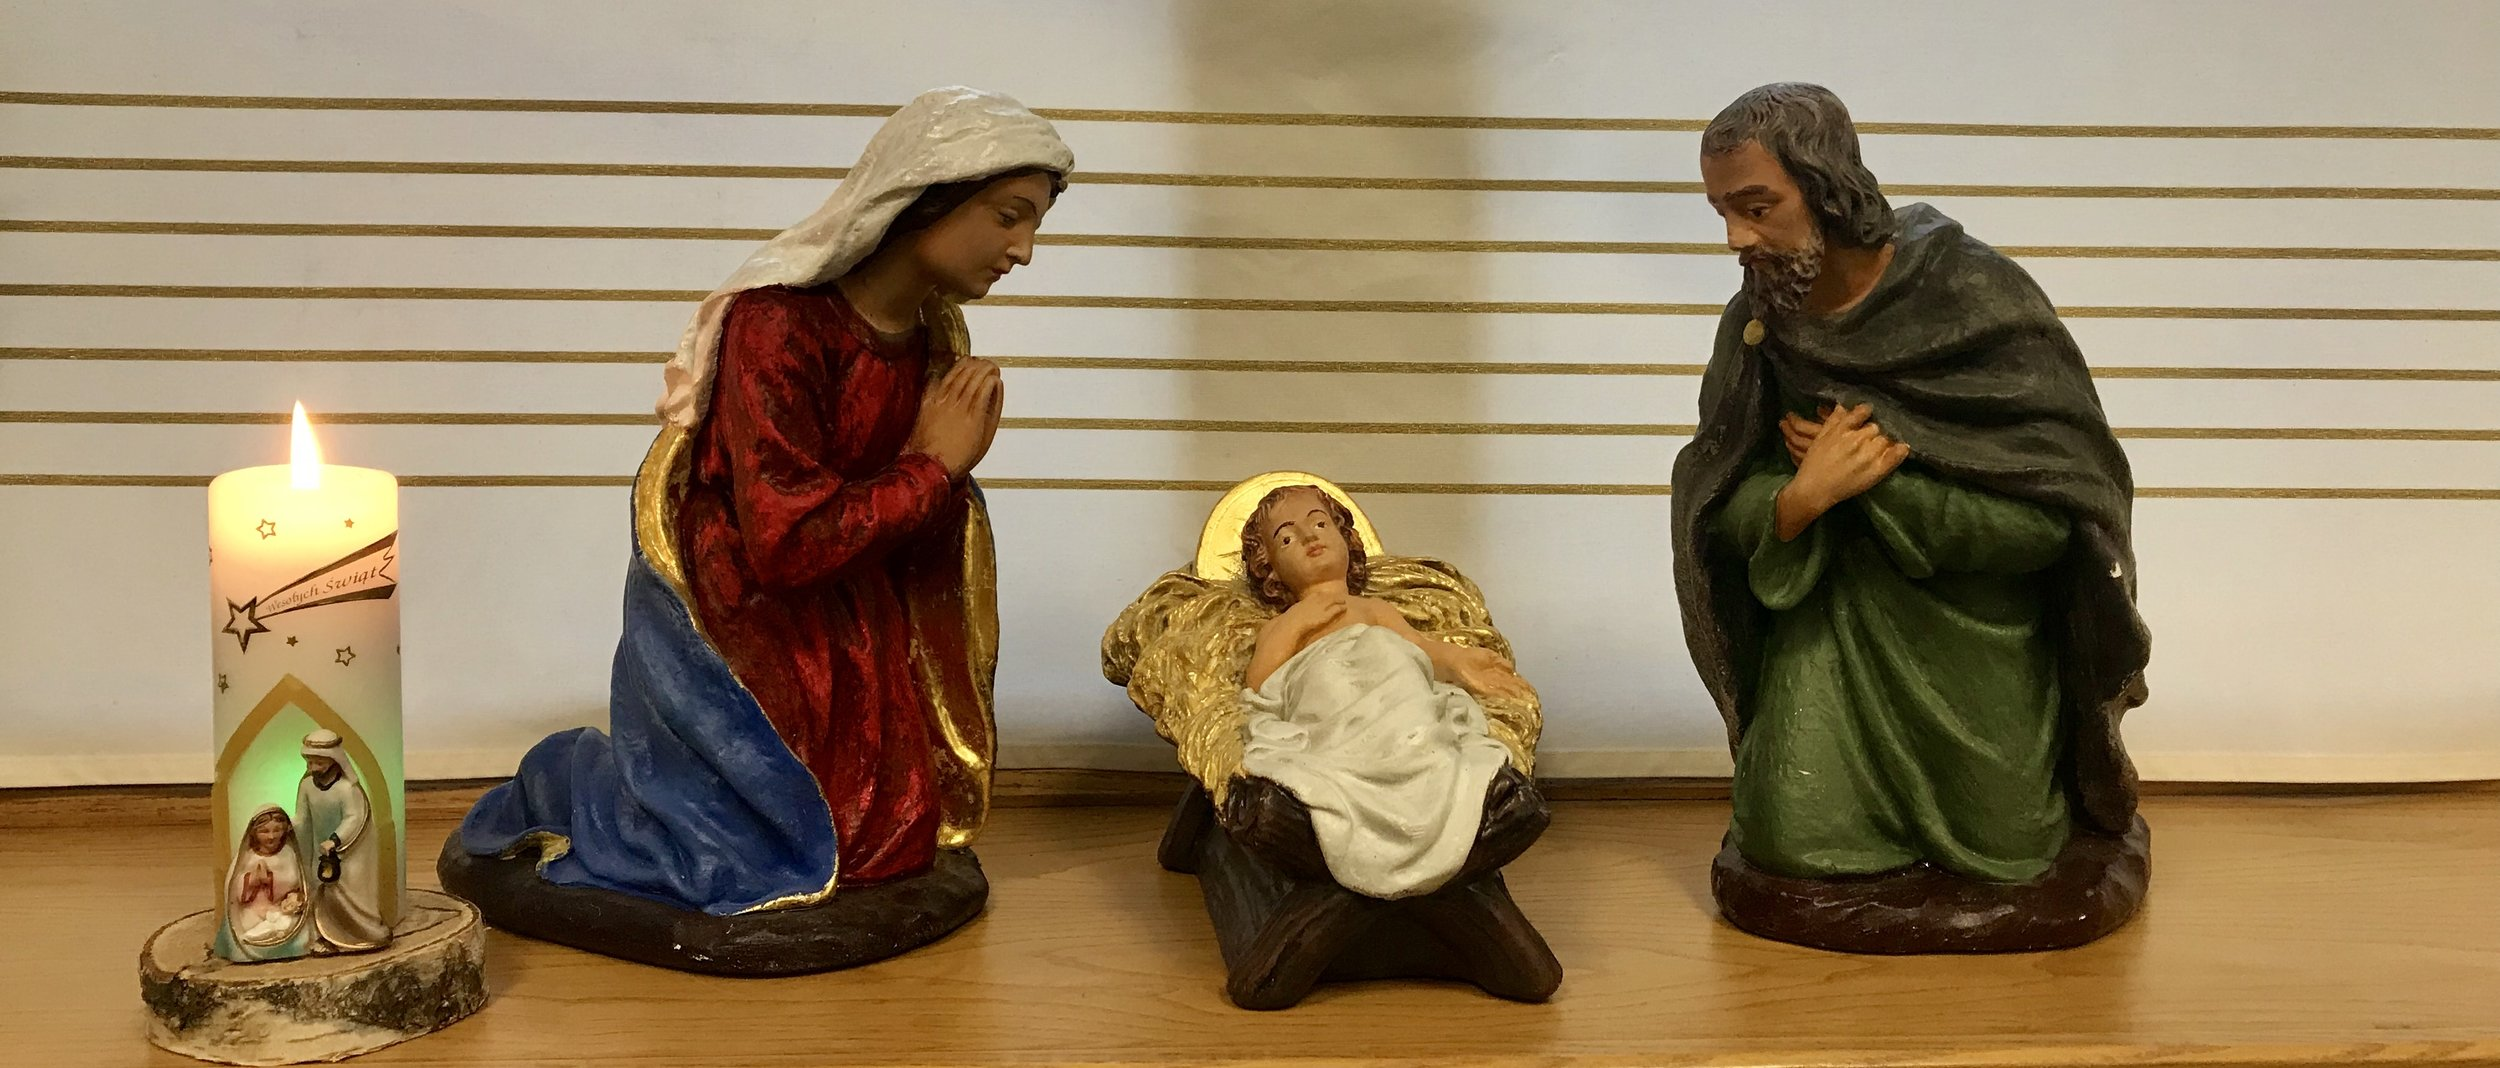 THE CRIB IN THE CHAPEL AT OUR OFFICE IN LITTLMORE